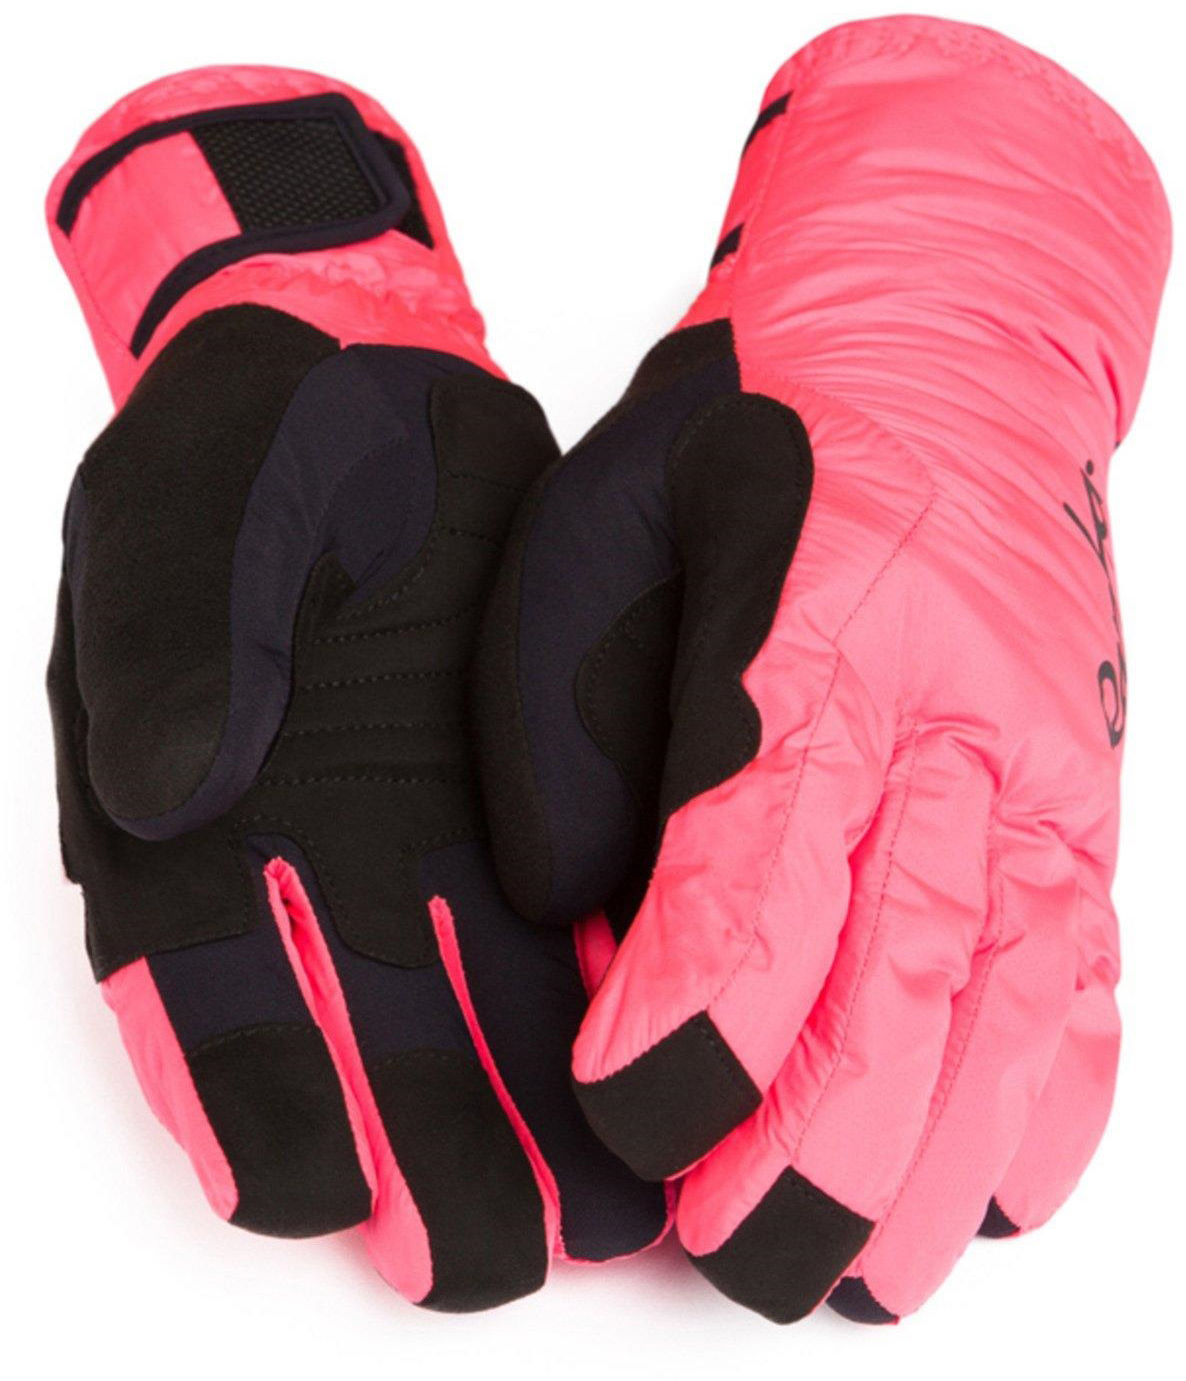 Rapha Deep Winter Gloves (Insulated) | Handsker